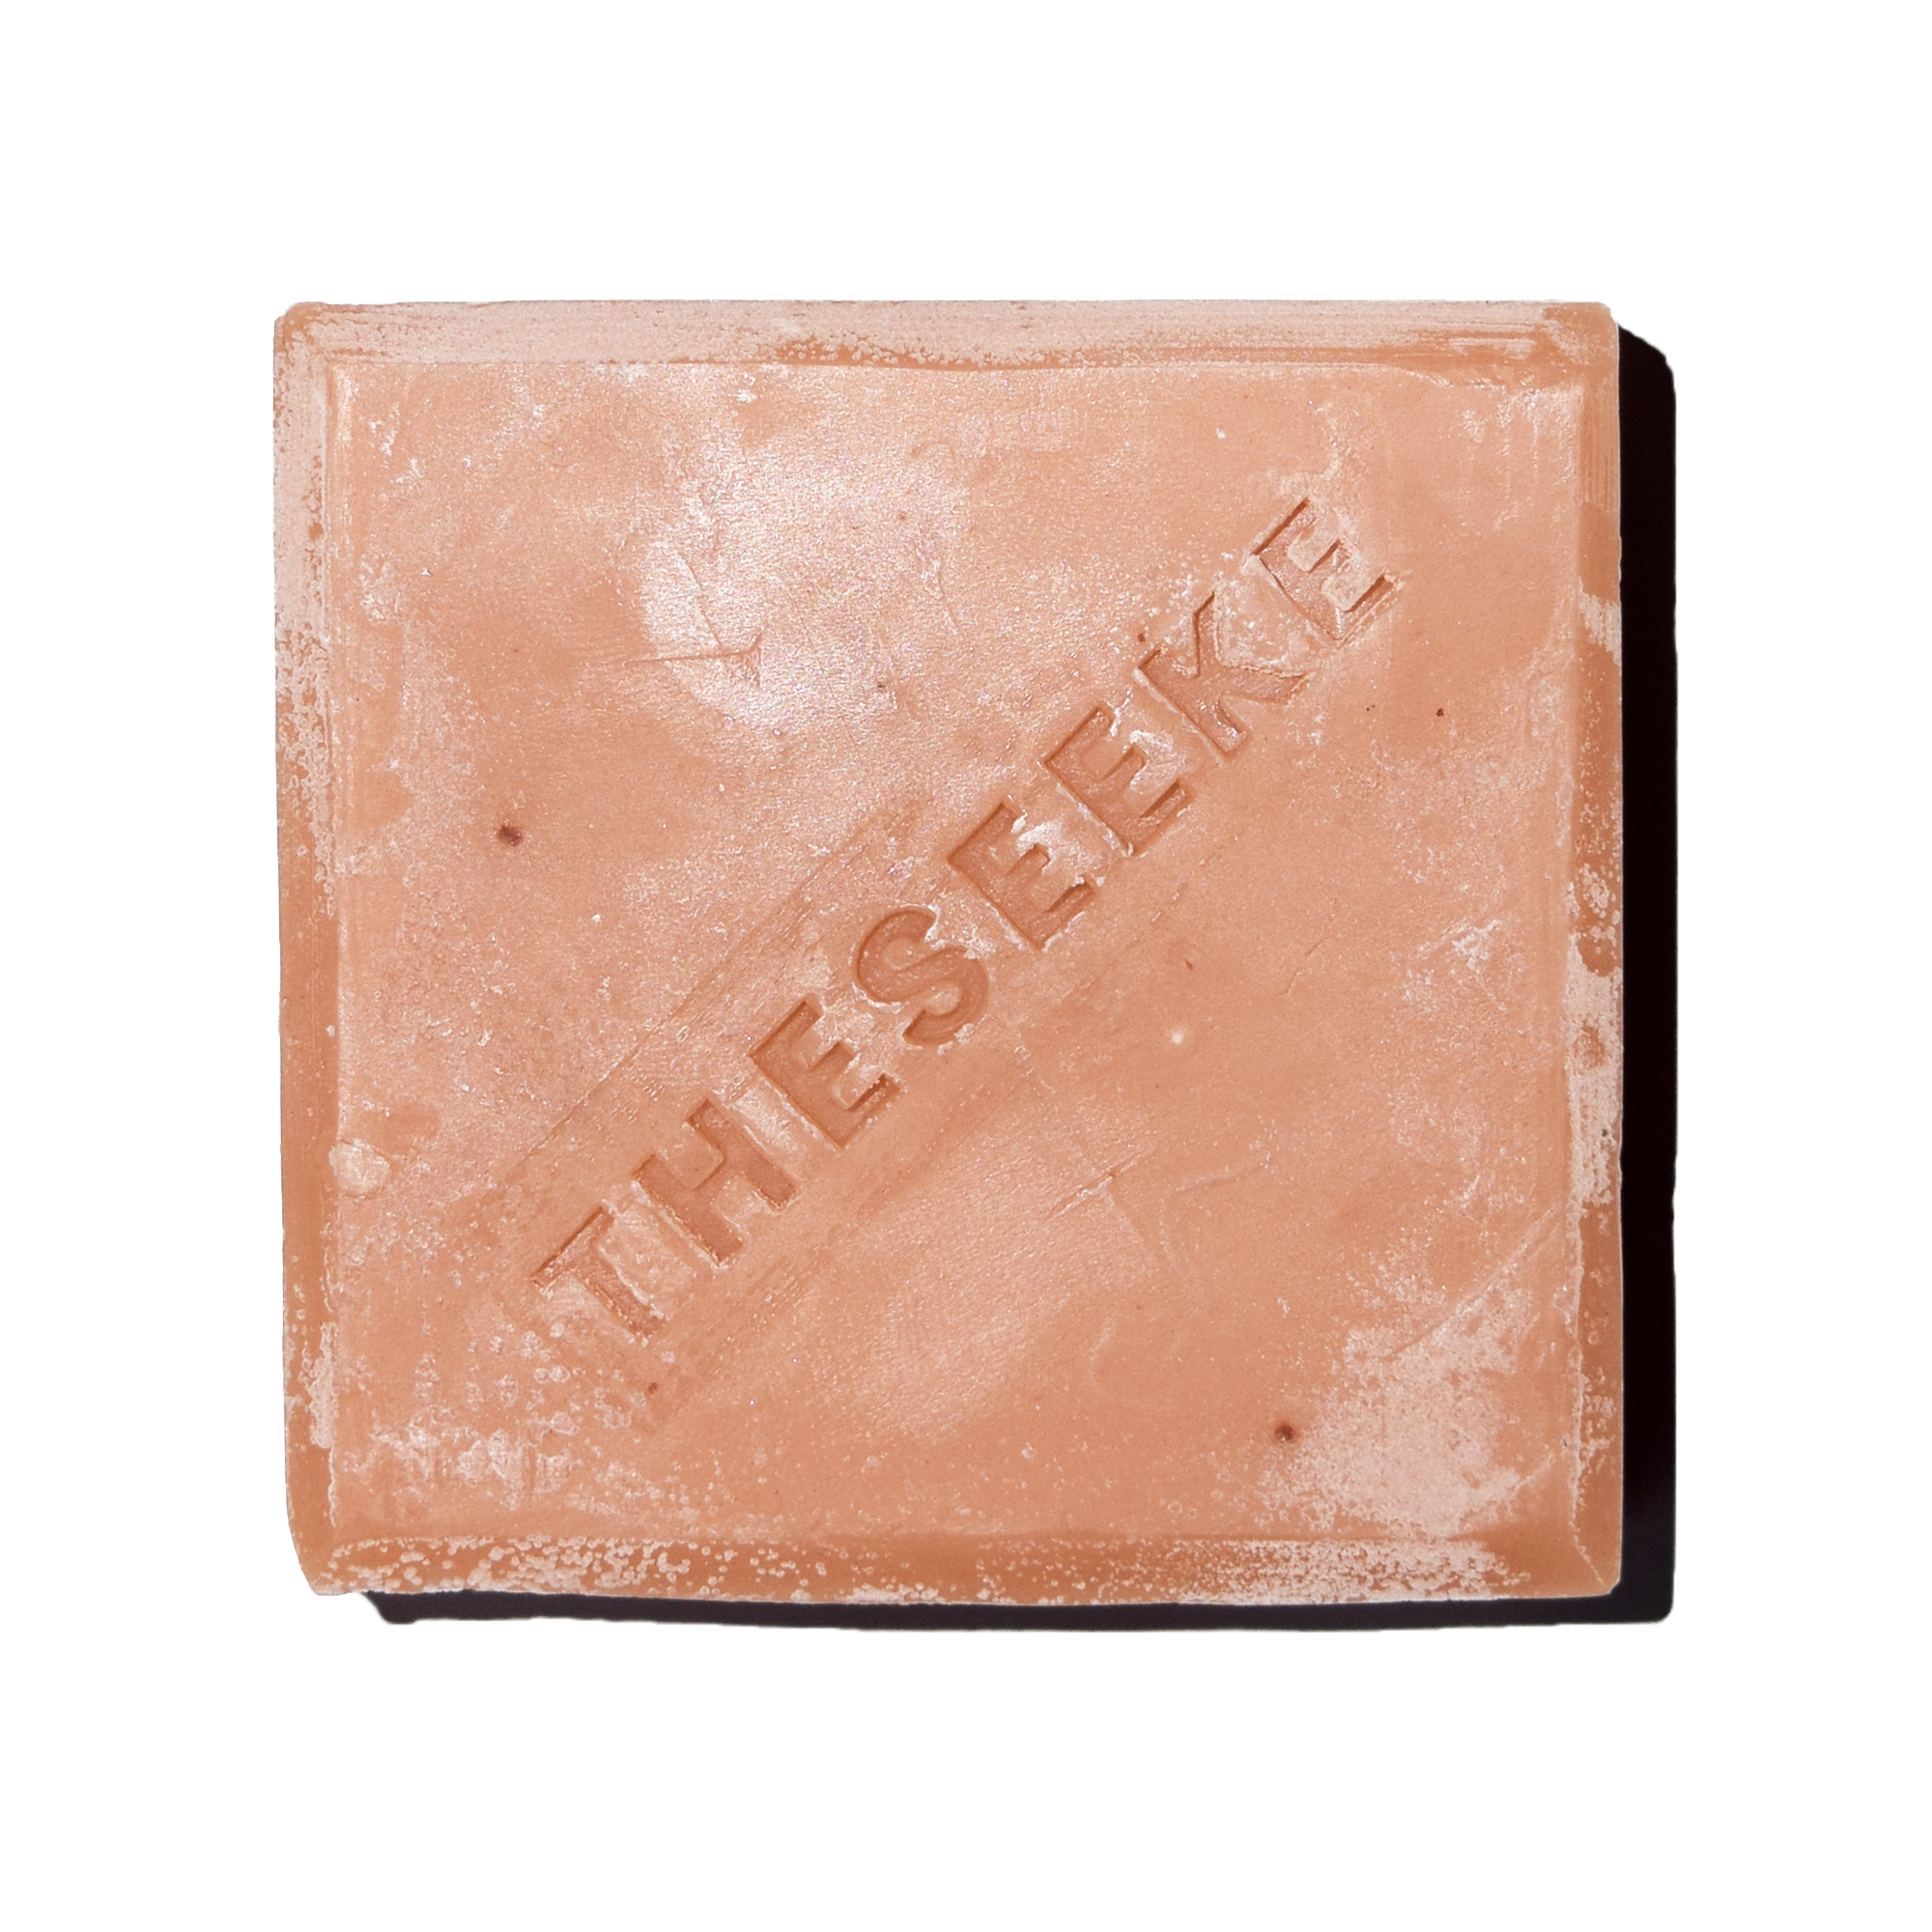 Theseeke Pink Clay Cleanse Bar 100g